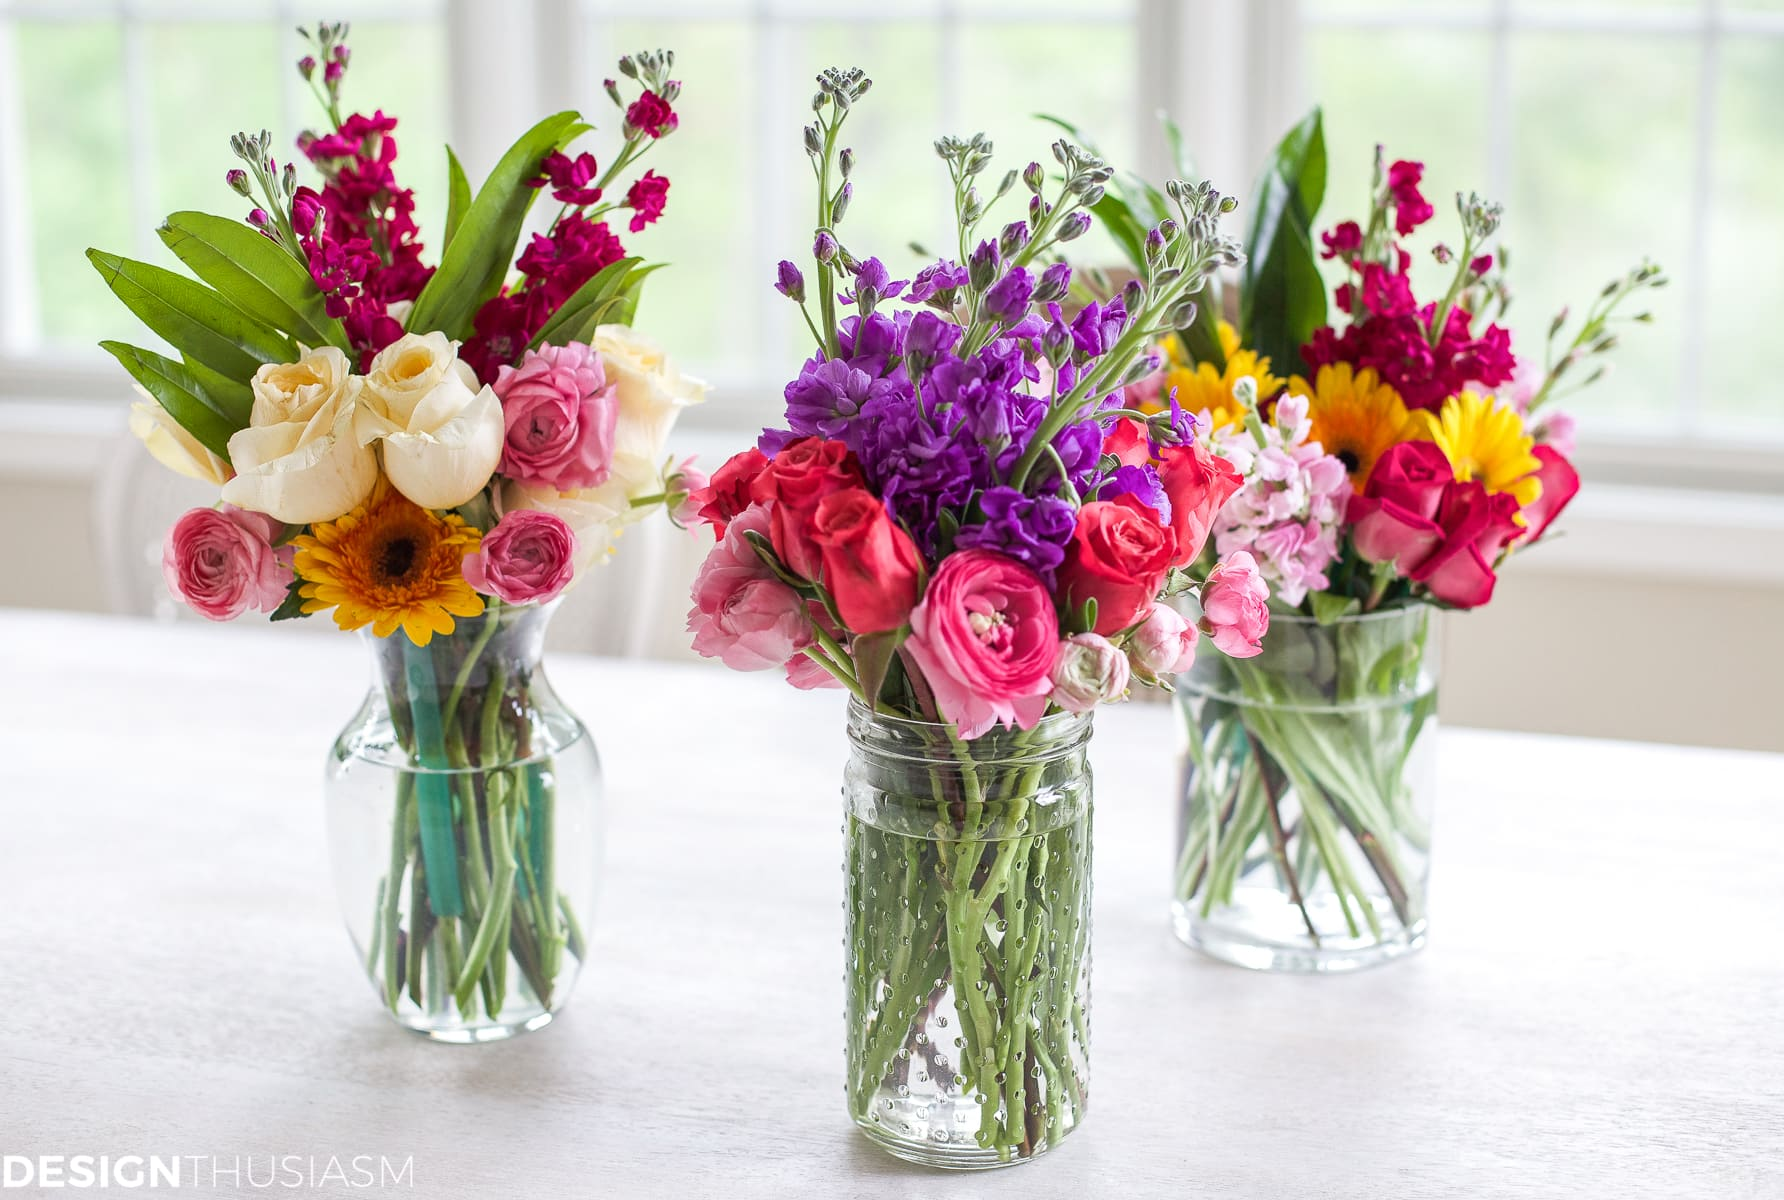 Arranging spring flowers into small displays - designthusiasm.com